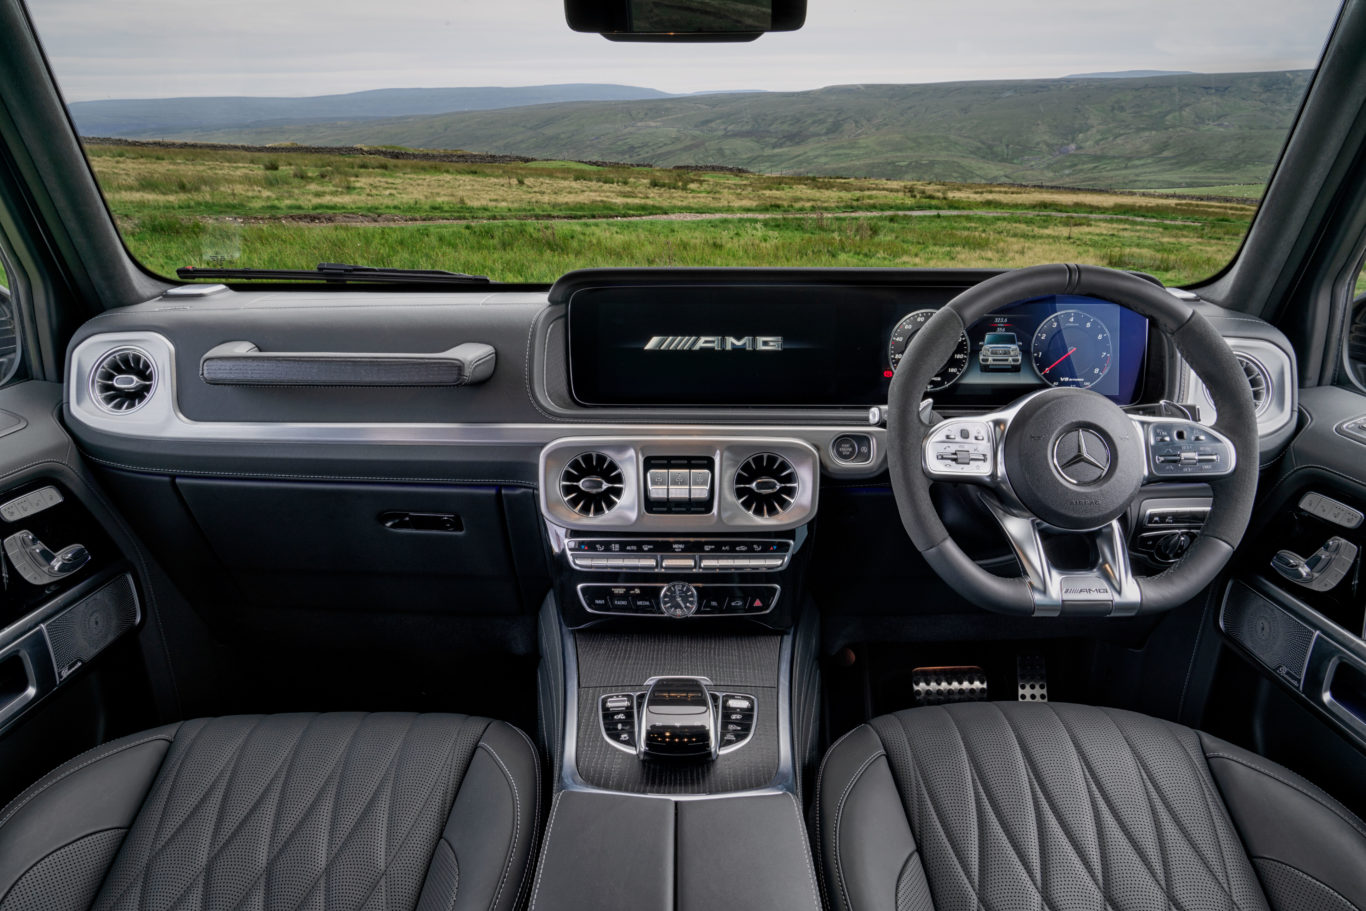 The interior of the G63 has been finished to a very high standard